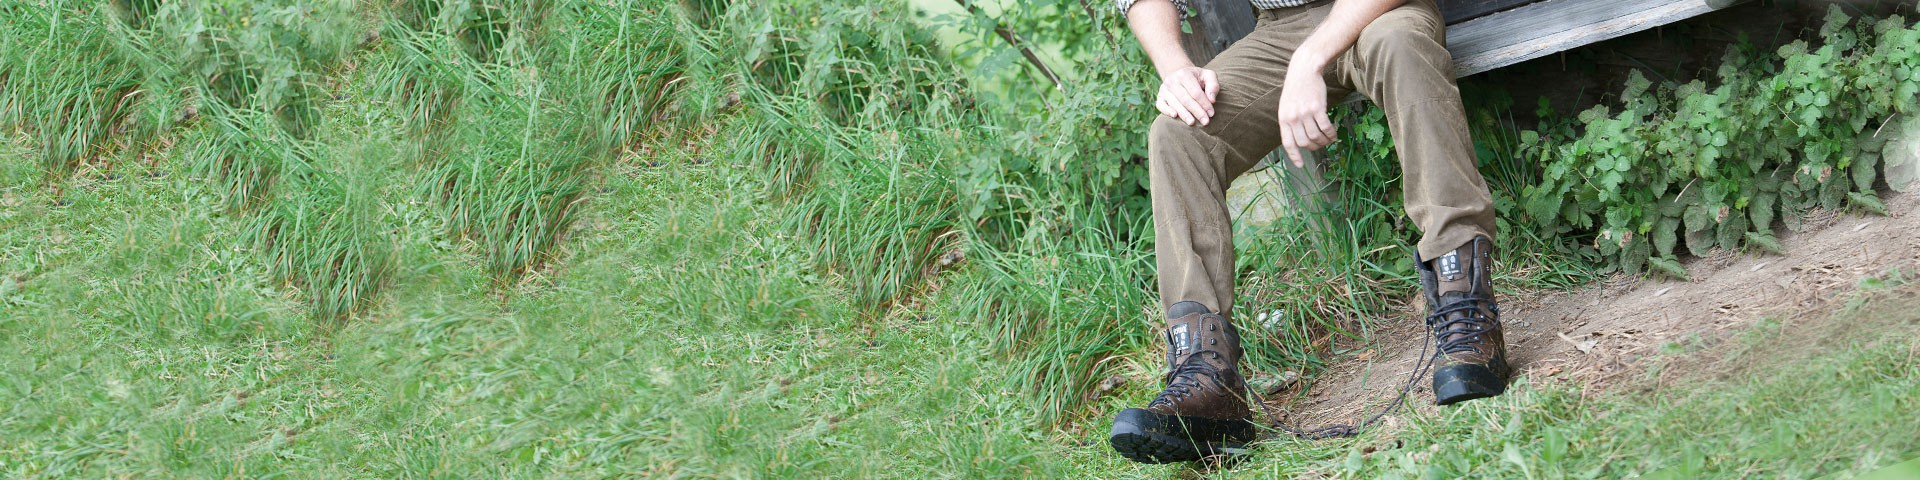 Hunting footwear -  Boots and shoes for Hunting | BESTARD